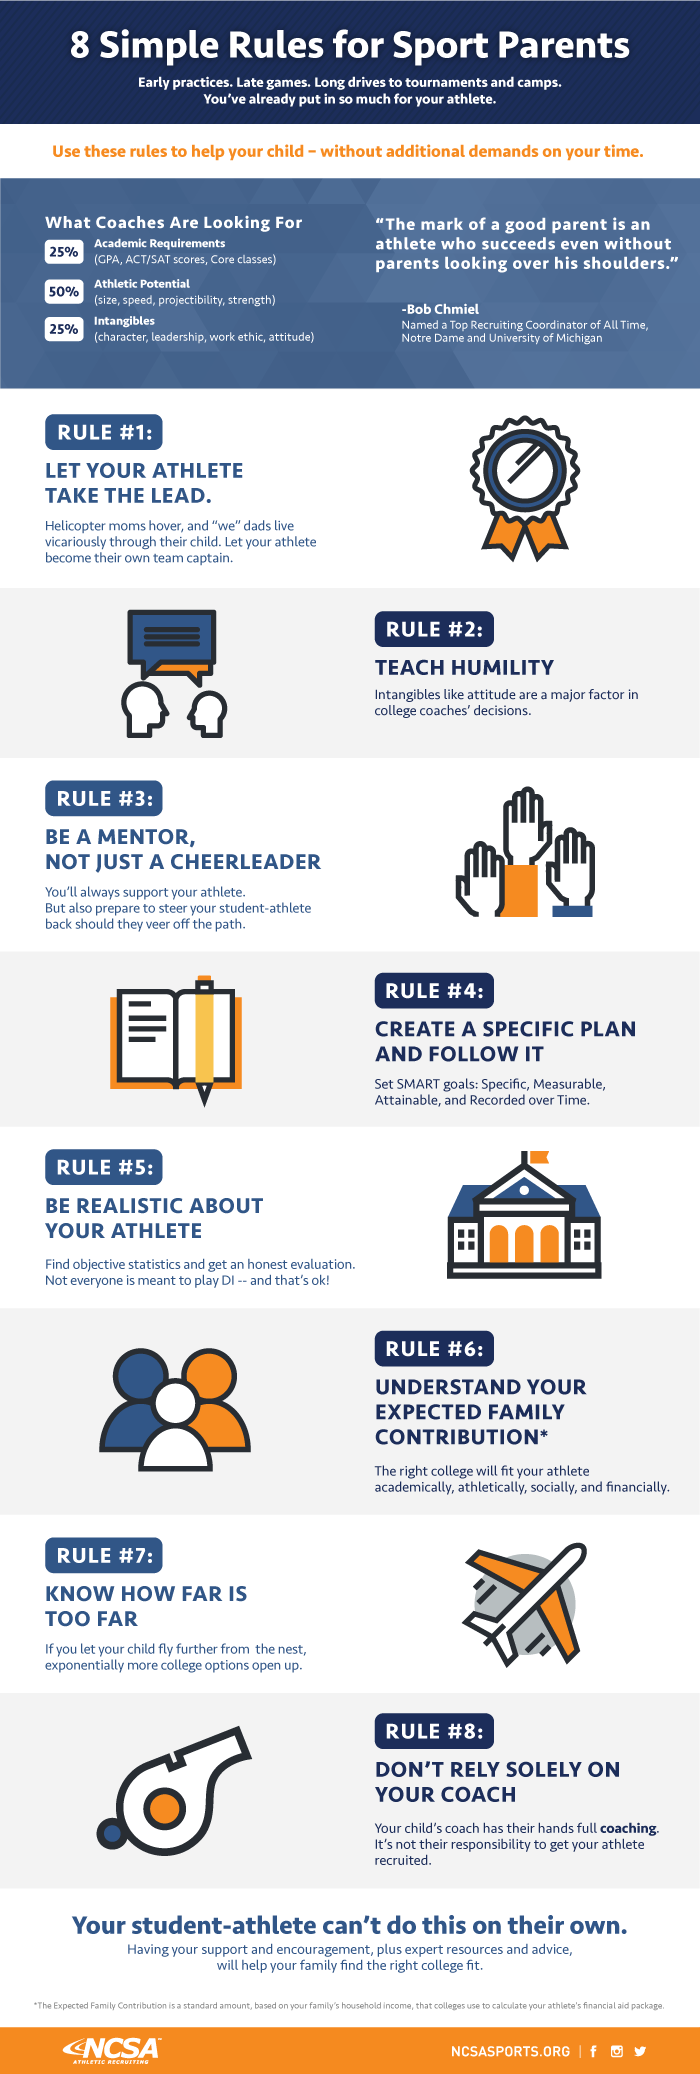 rules for sport parents infographic